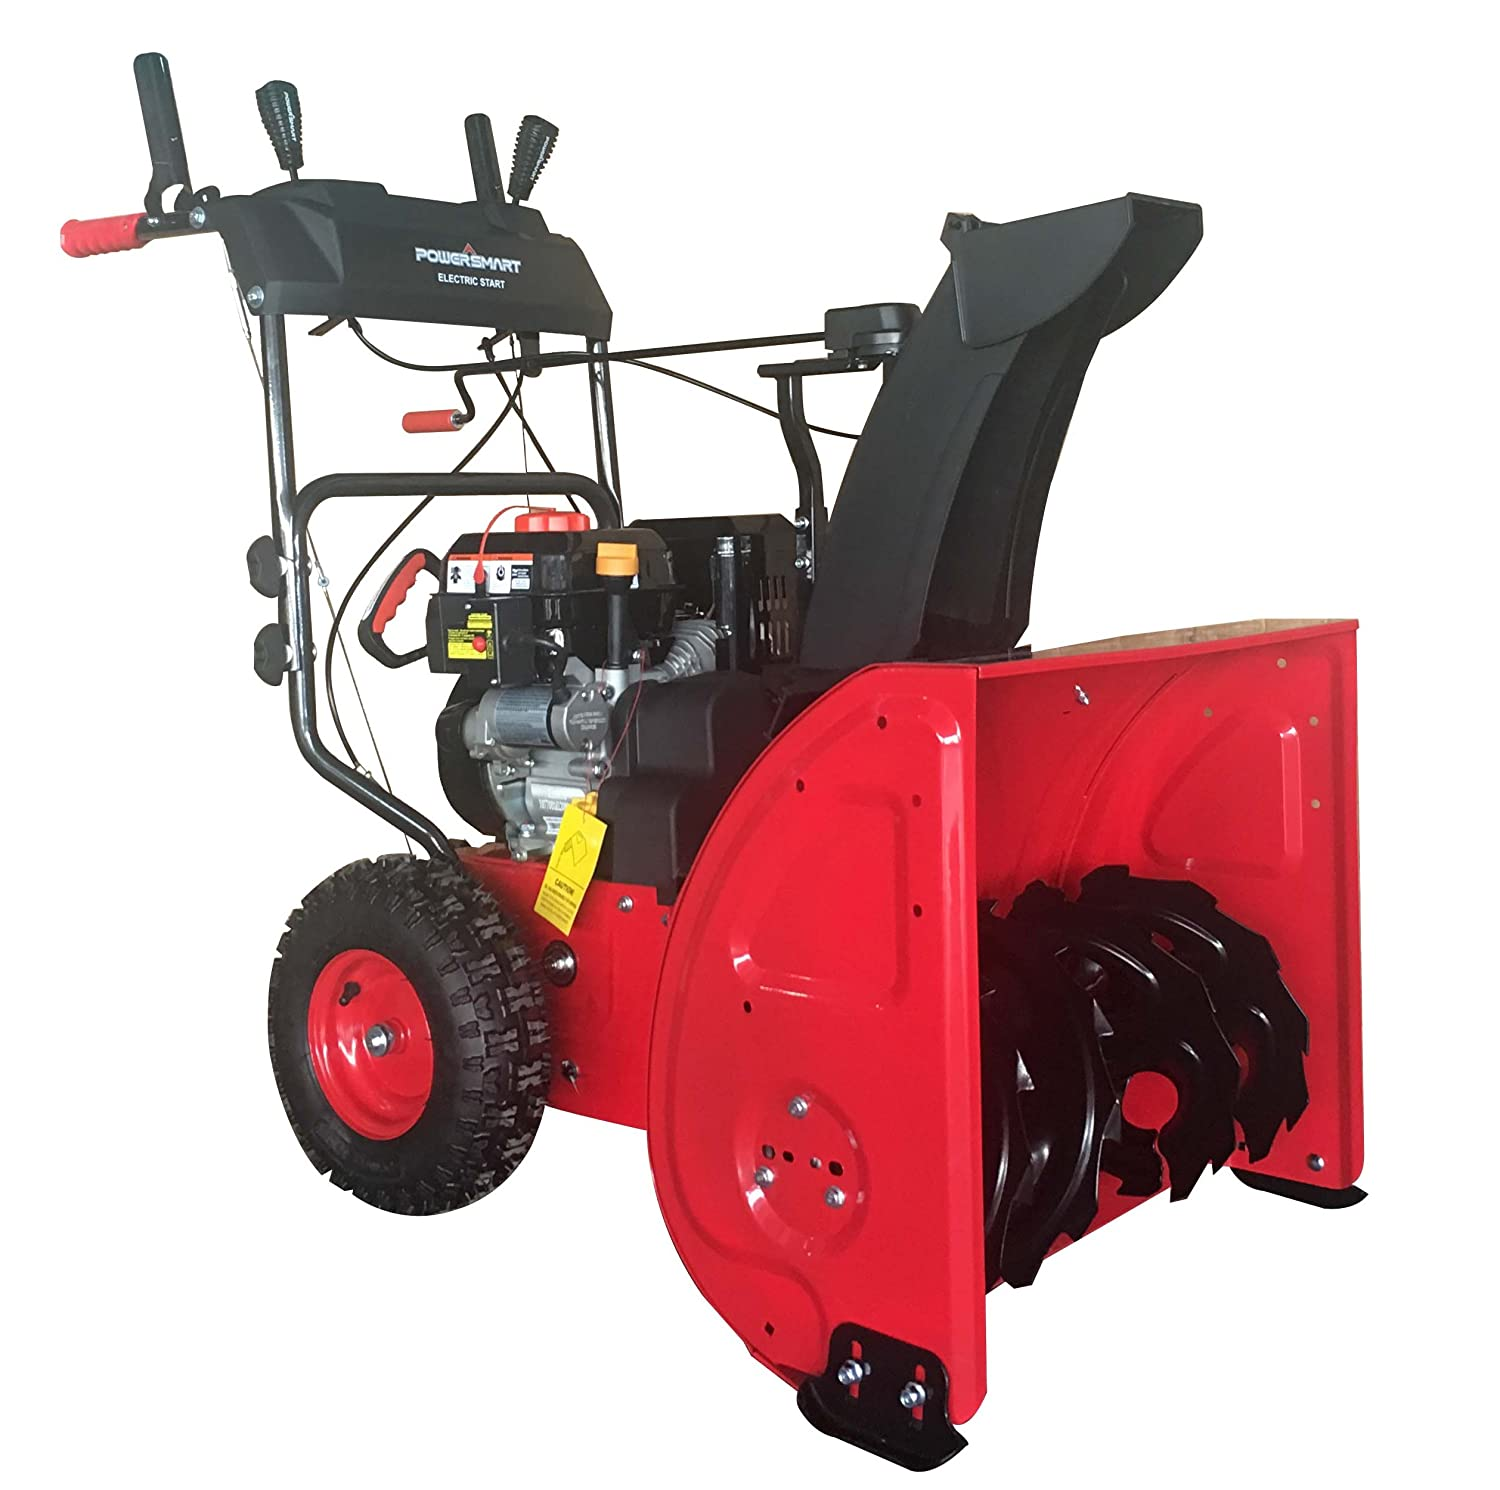 PowerSmart DB72024PA 2-Stage Gas Snow Blower with Power Assist, 24 , Black